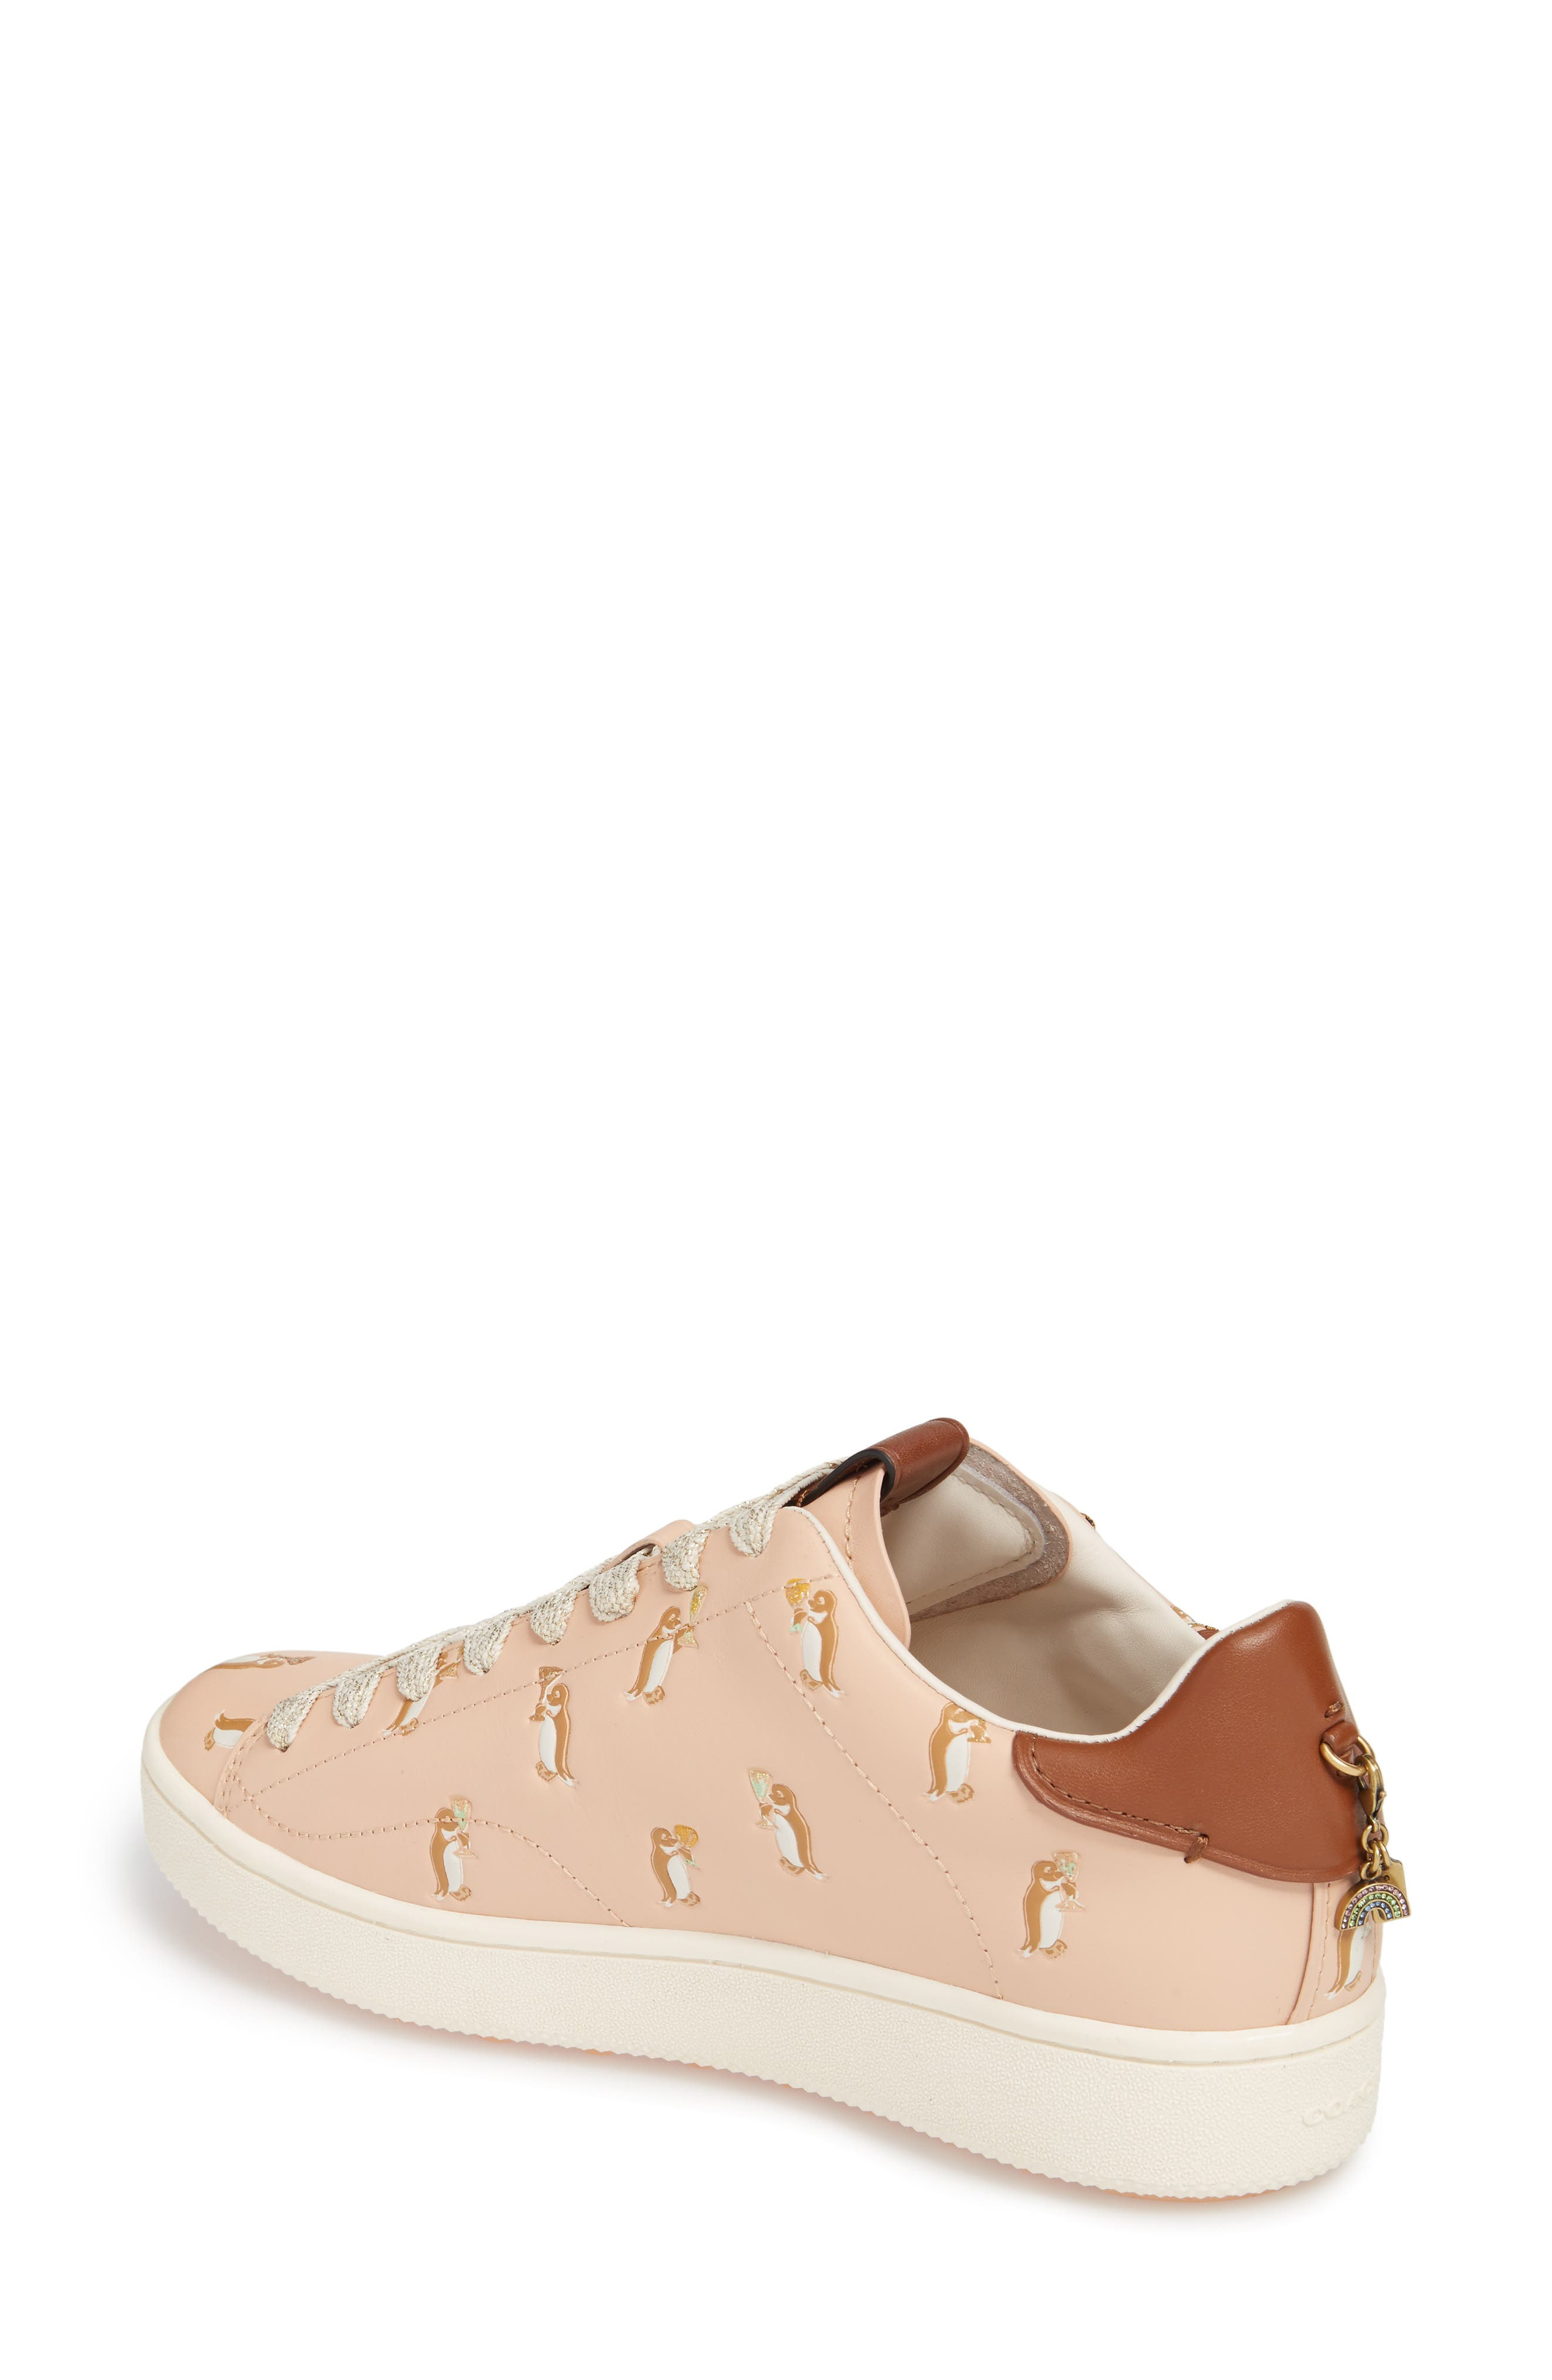 Patch Sneaker,                             Alternate thumbnail 2, color,                             Light Pink Leather